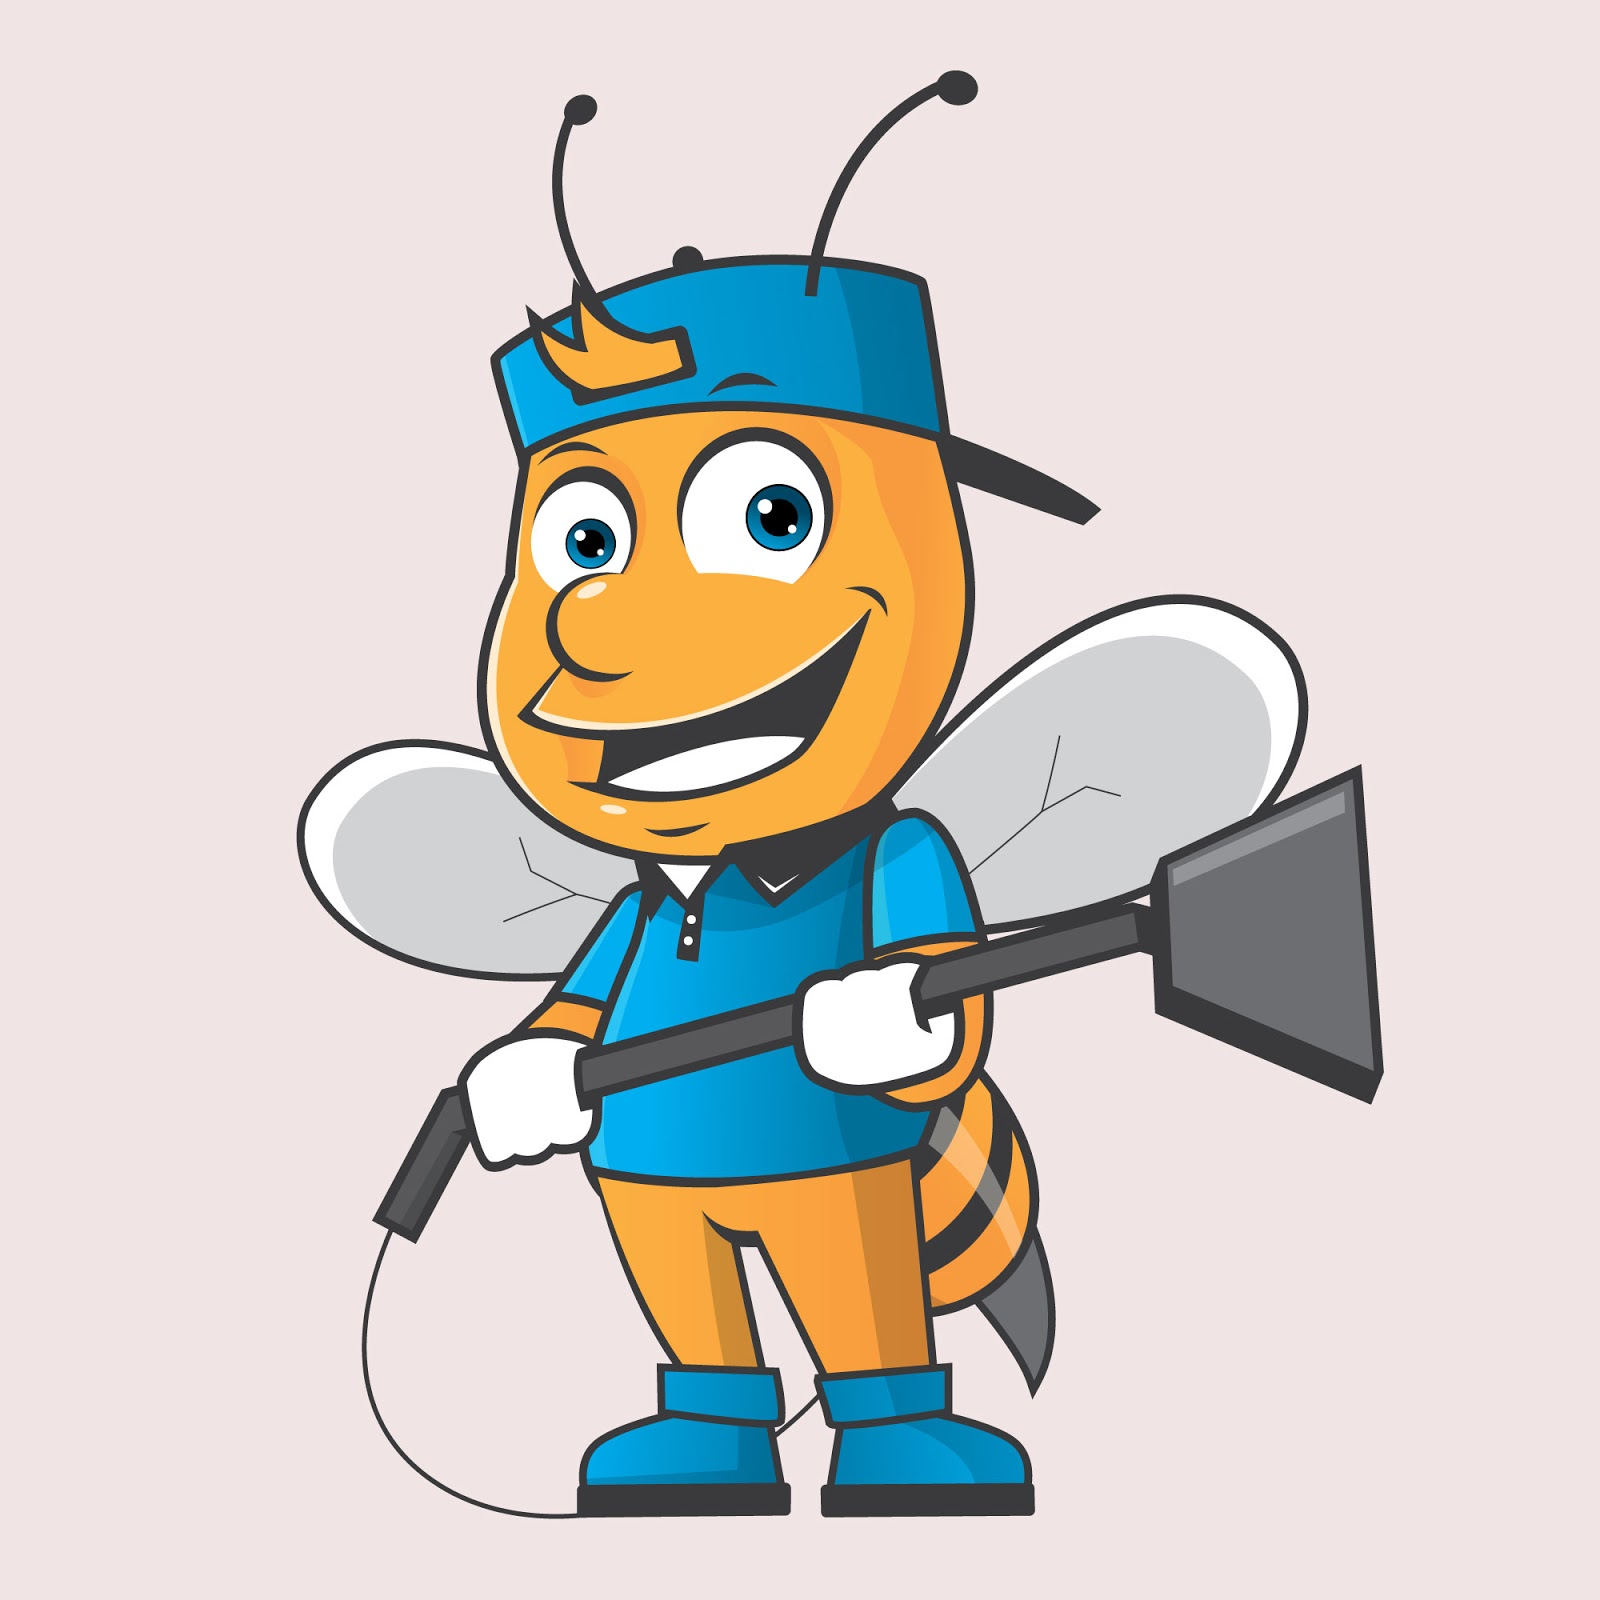 Bee Cleaning Mascot Logo Free Download Vector CDR, AI, EPS and PNG Formats